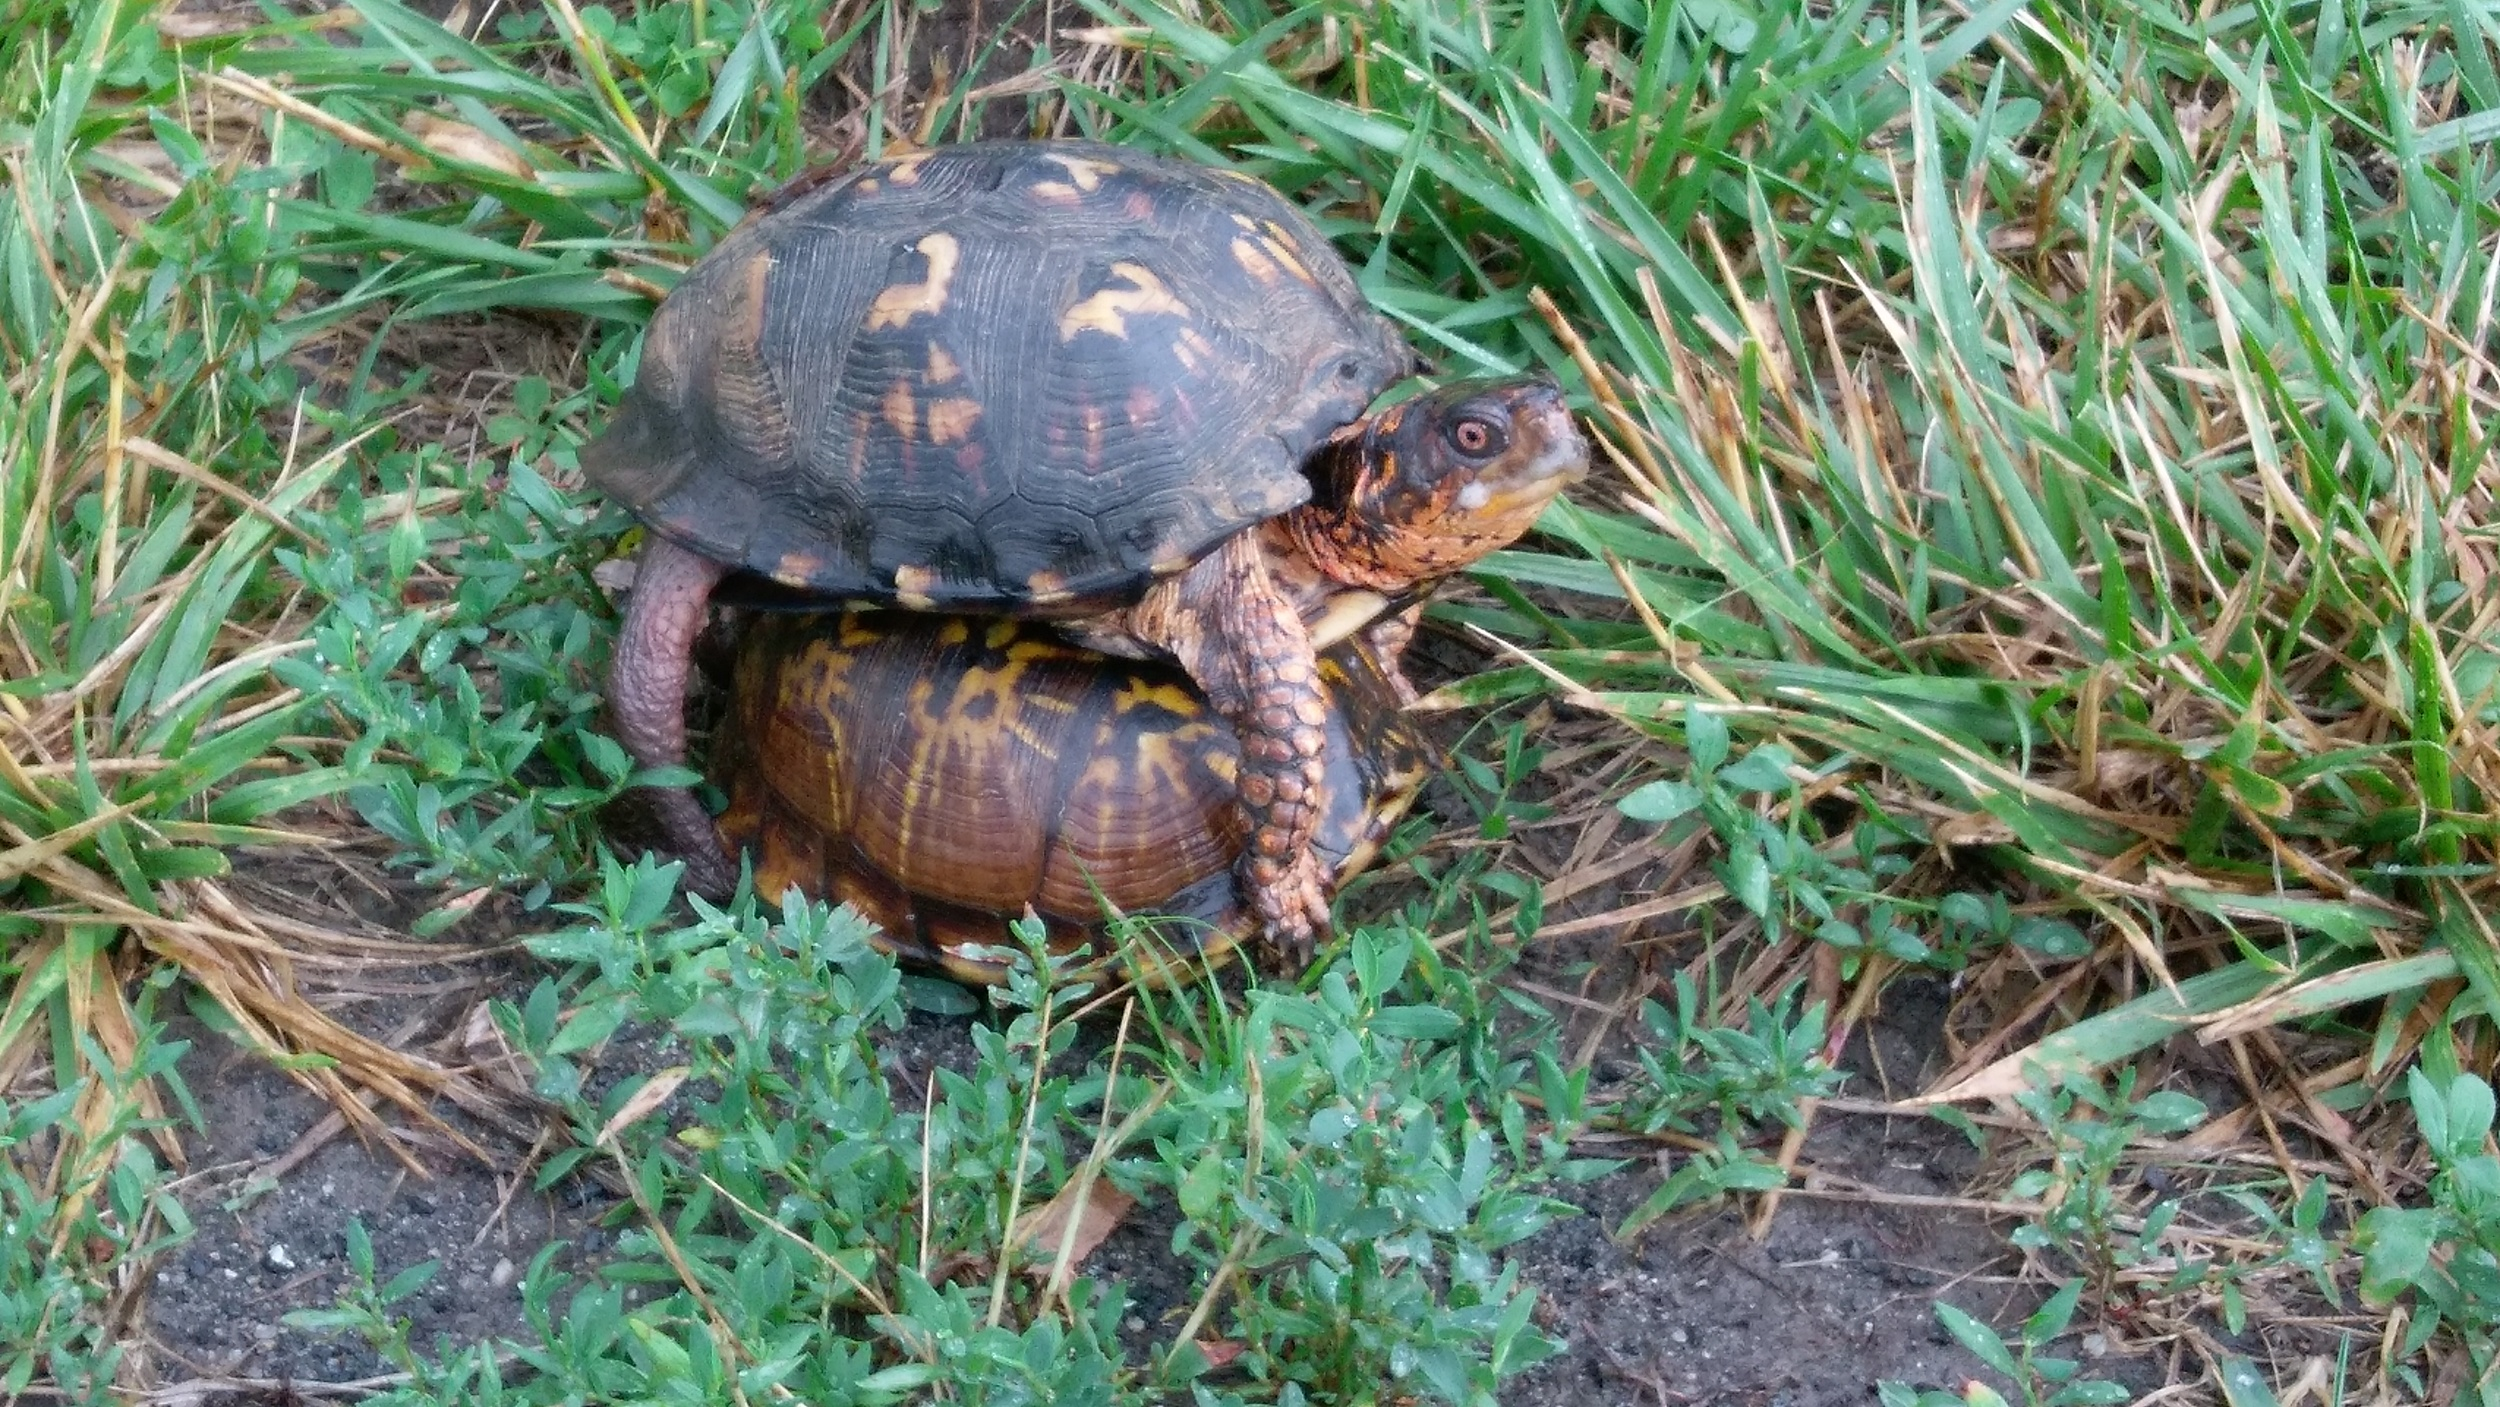 Turtles find thunderstorms exciting.